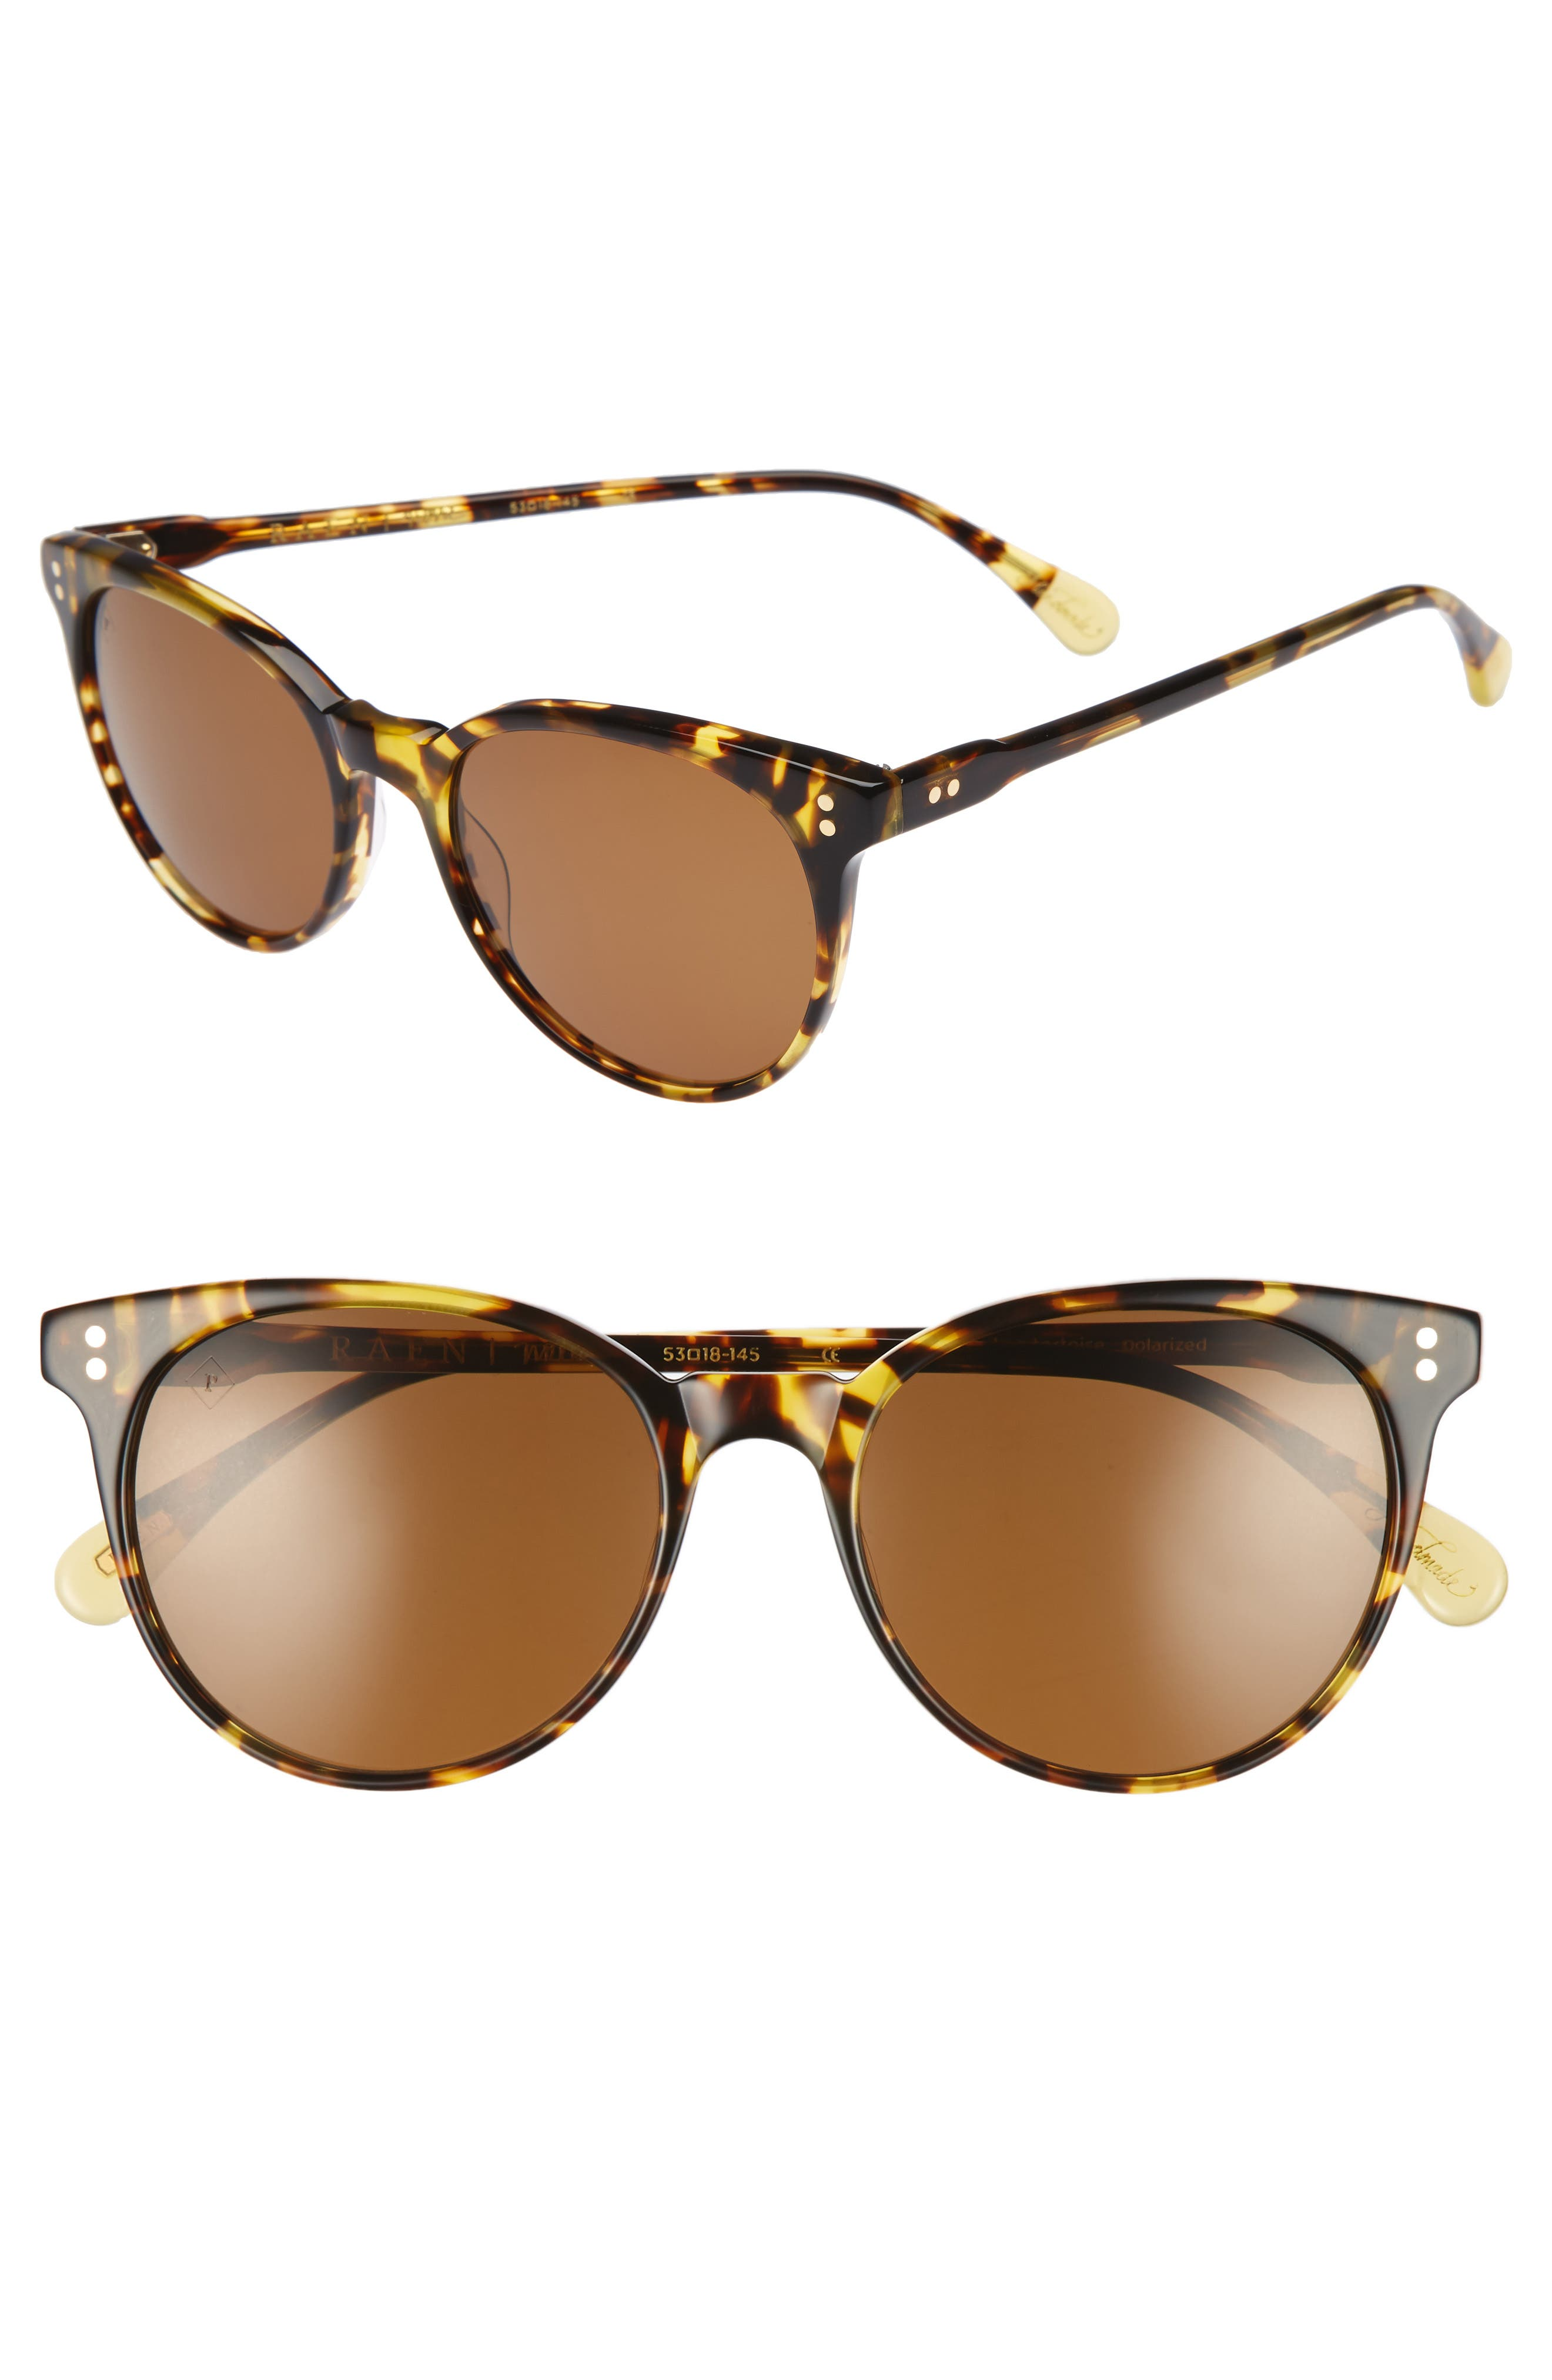 Norie 53mm Sunglasses,                             Main thumbnail 1, color,                             205